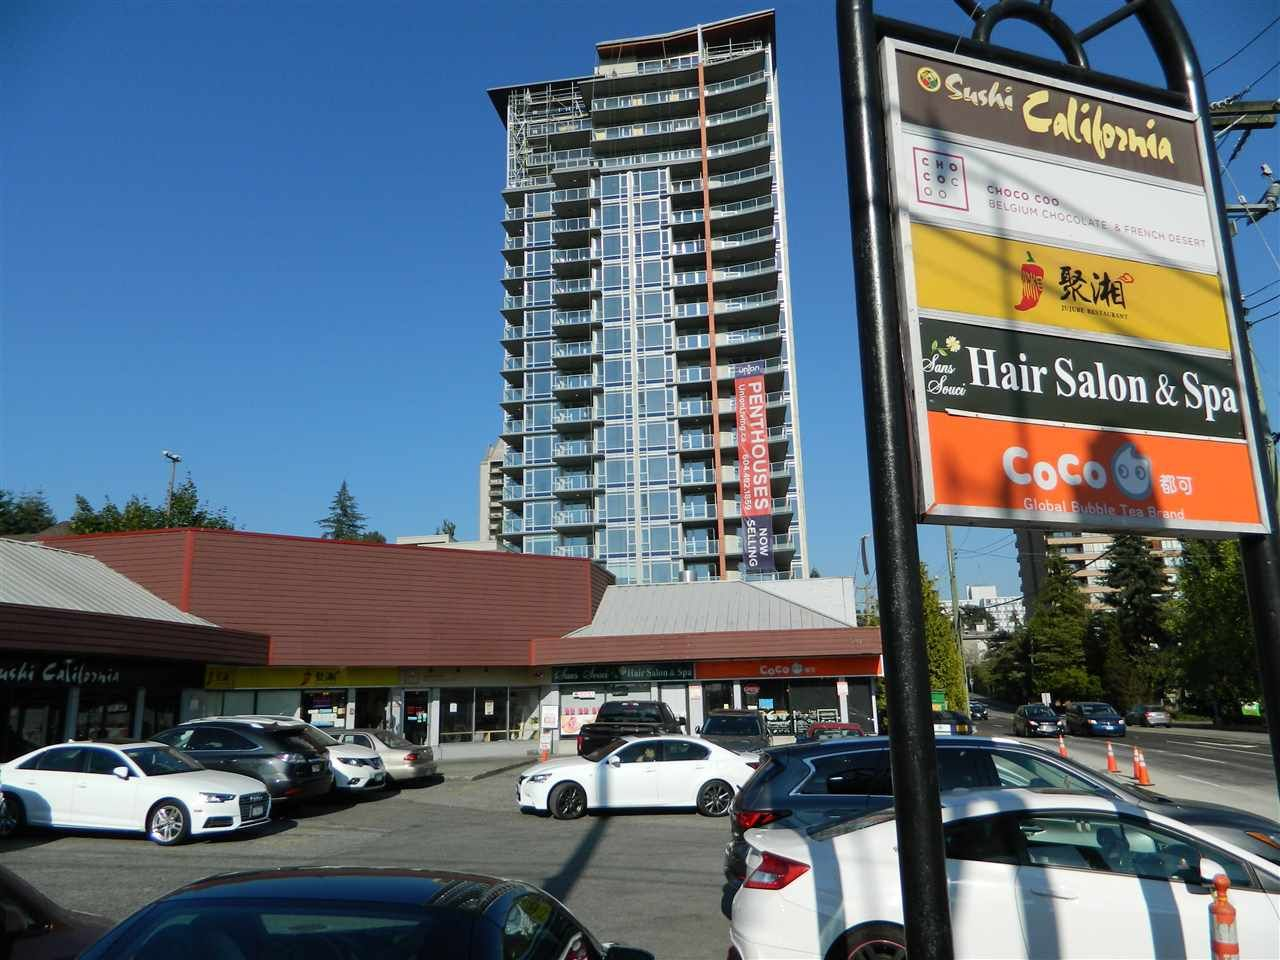 Main Photo: D 501 NORTH ROAD in Coquitlam: Coquitlam West Business for sale : MLS®# C8020461